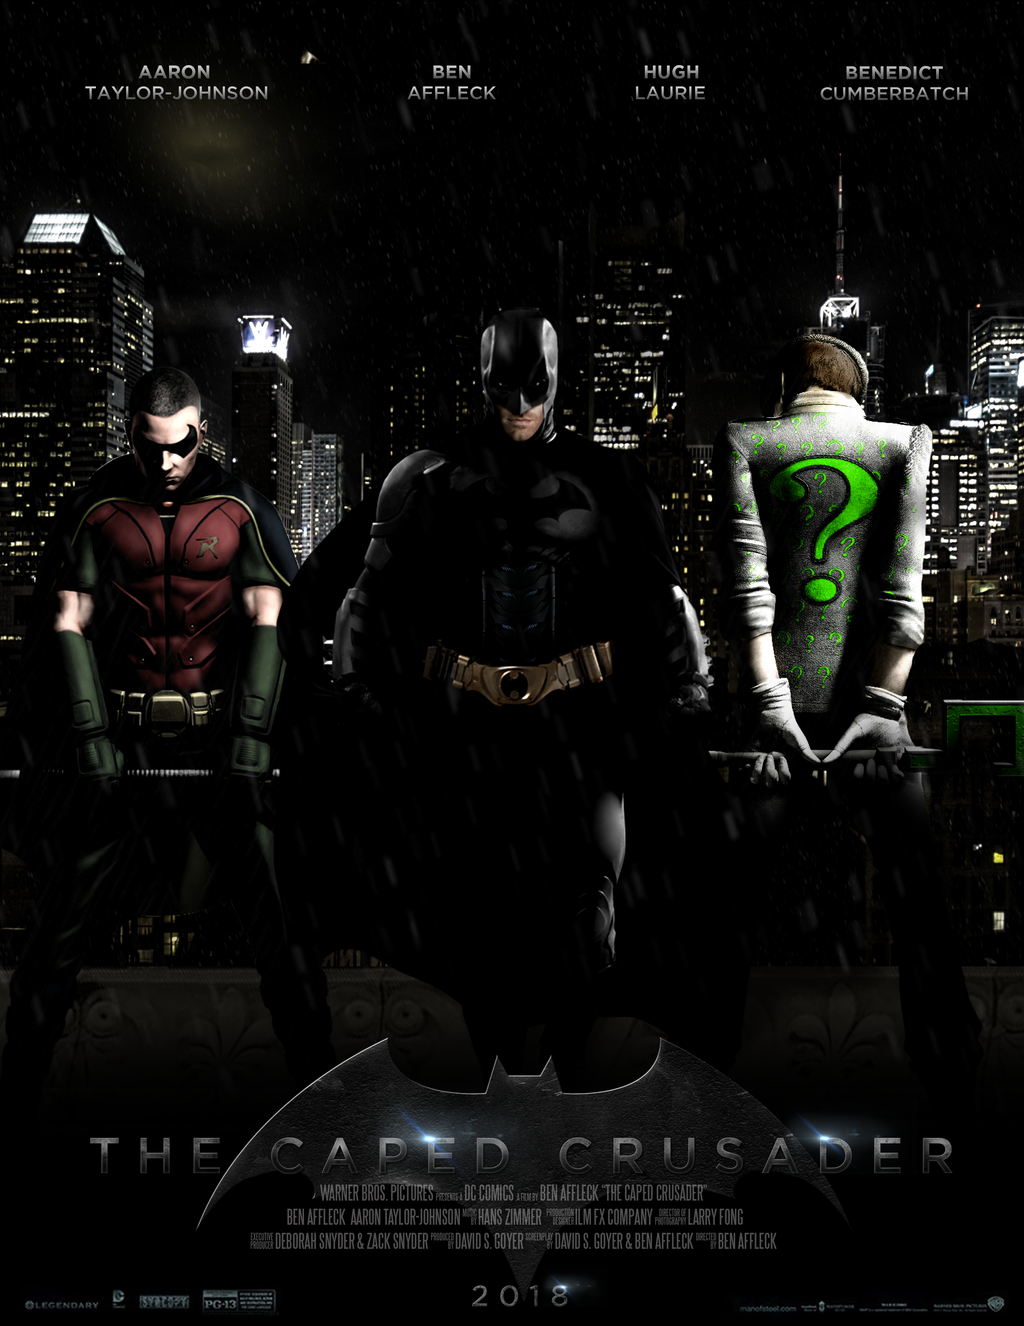 THE CAPED CRUSADER - POSTER II by MrSteiners